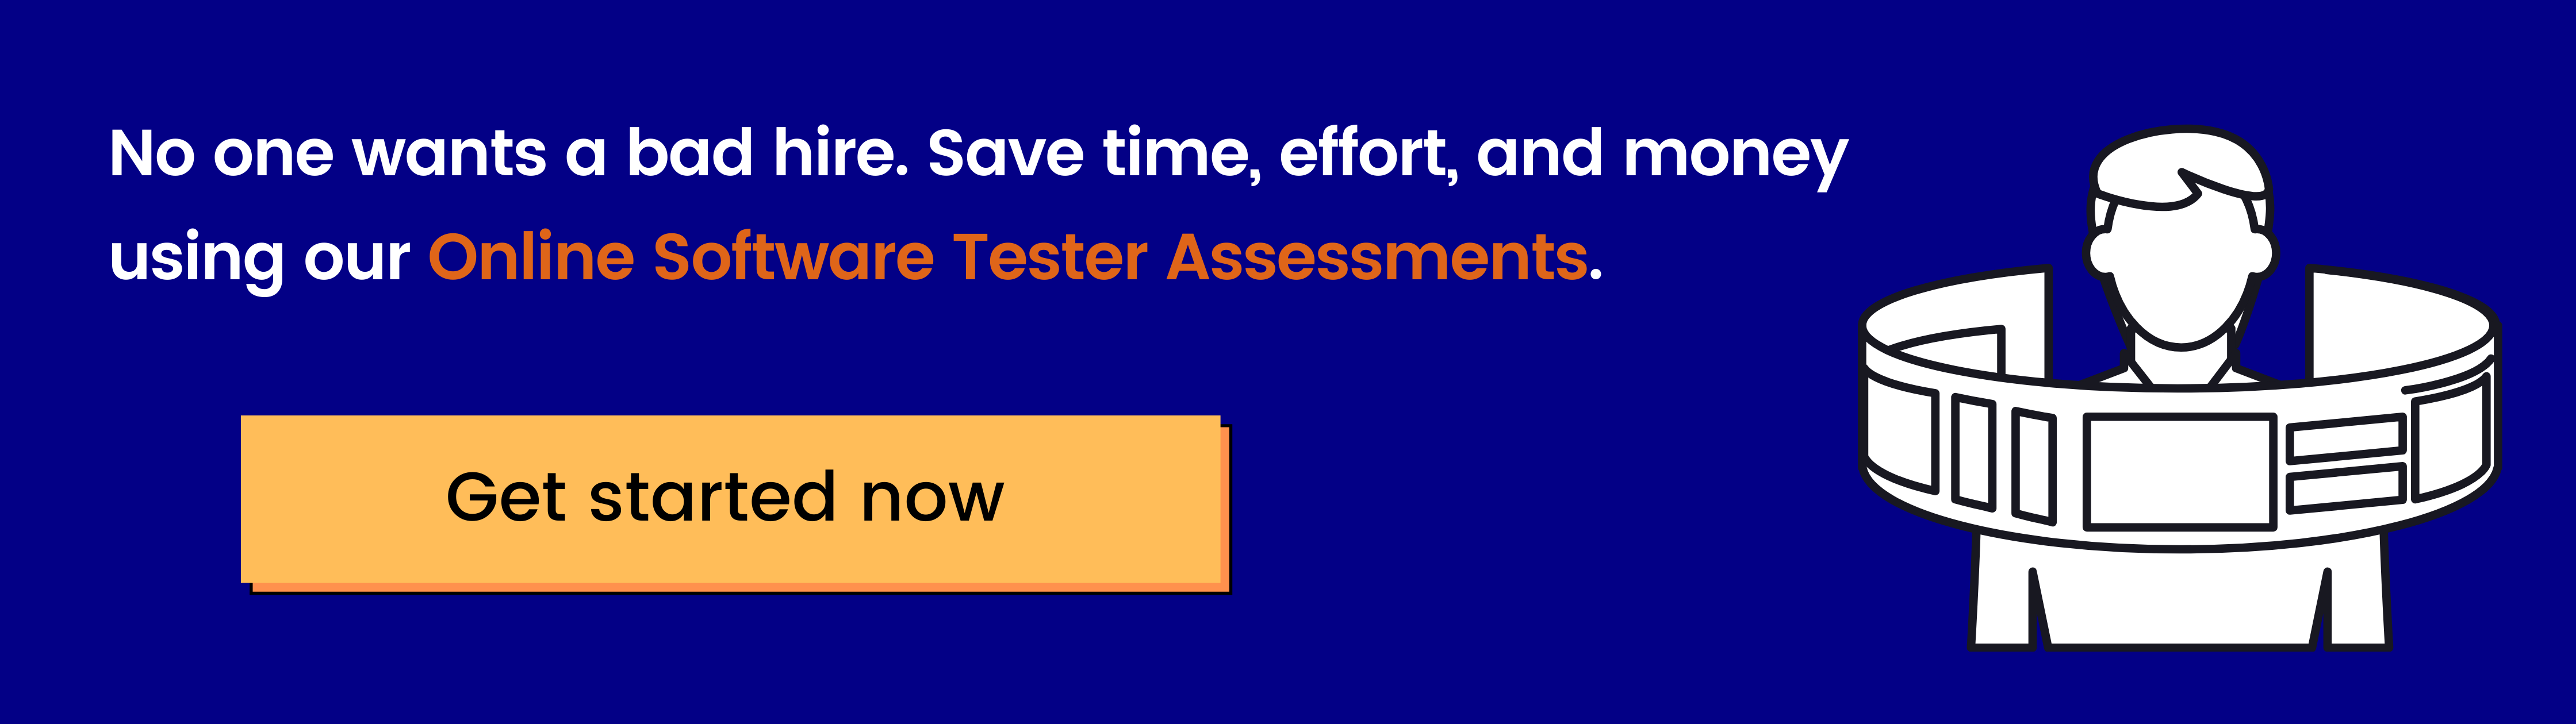 Hire software testers